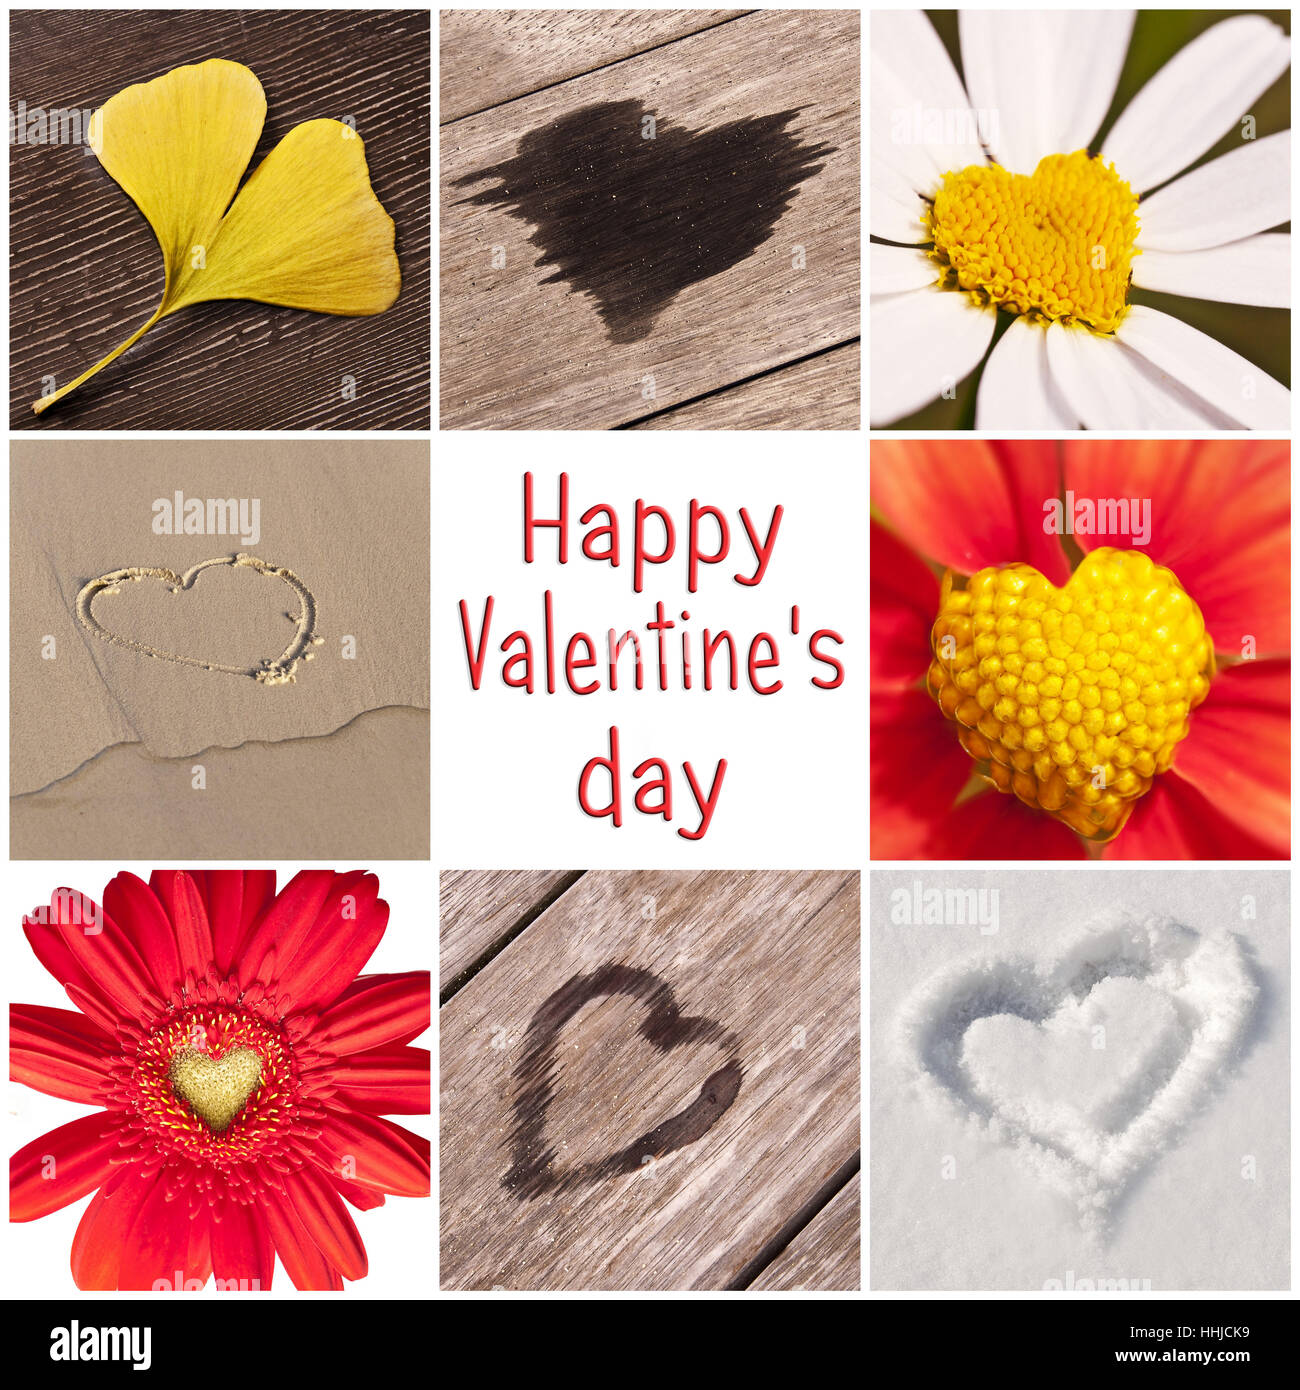 Collection of hearts in nature, valentine greeting card - Stock Image